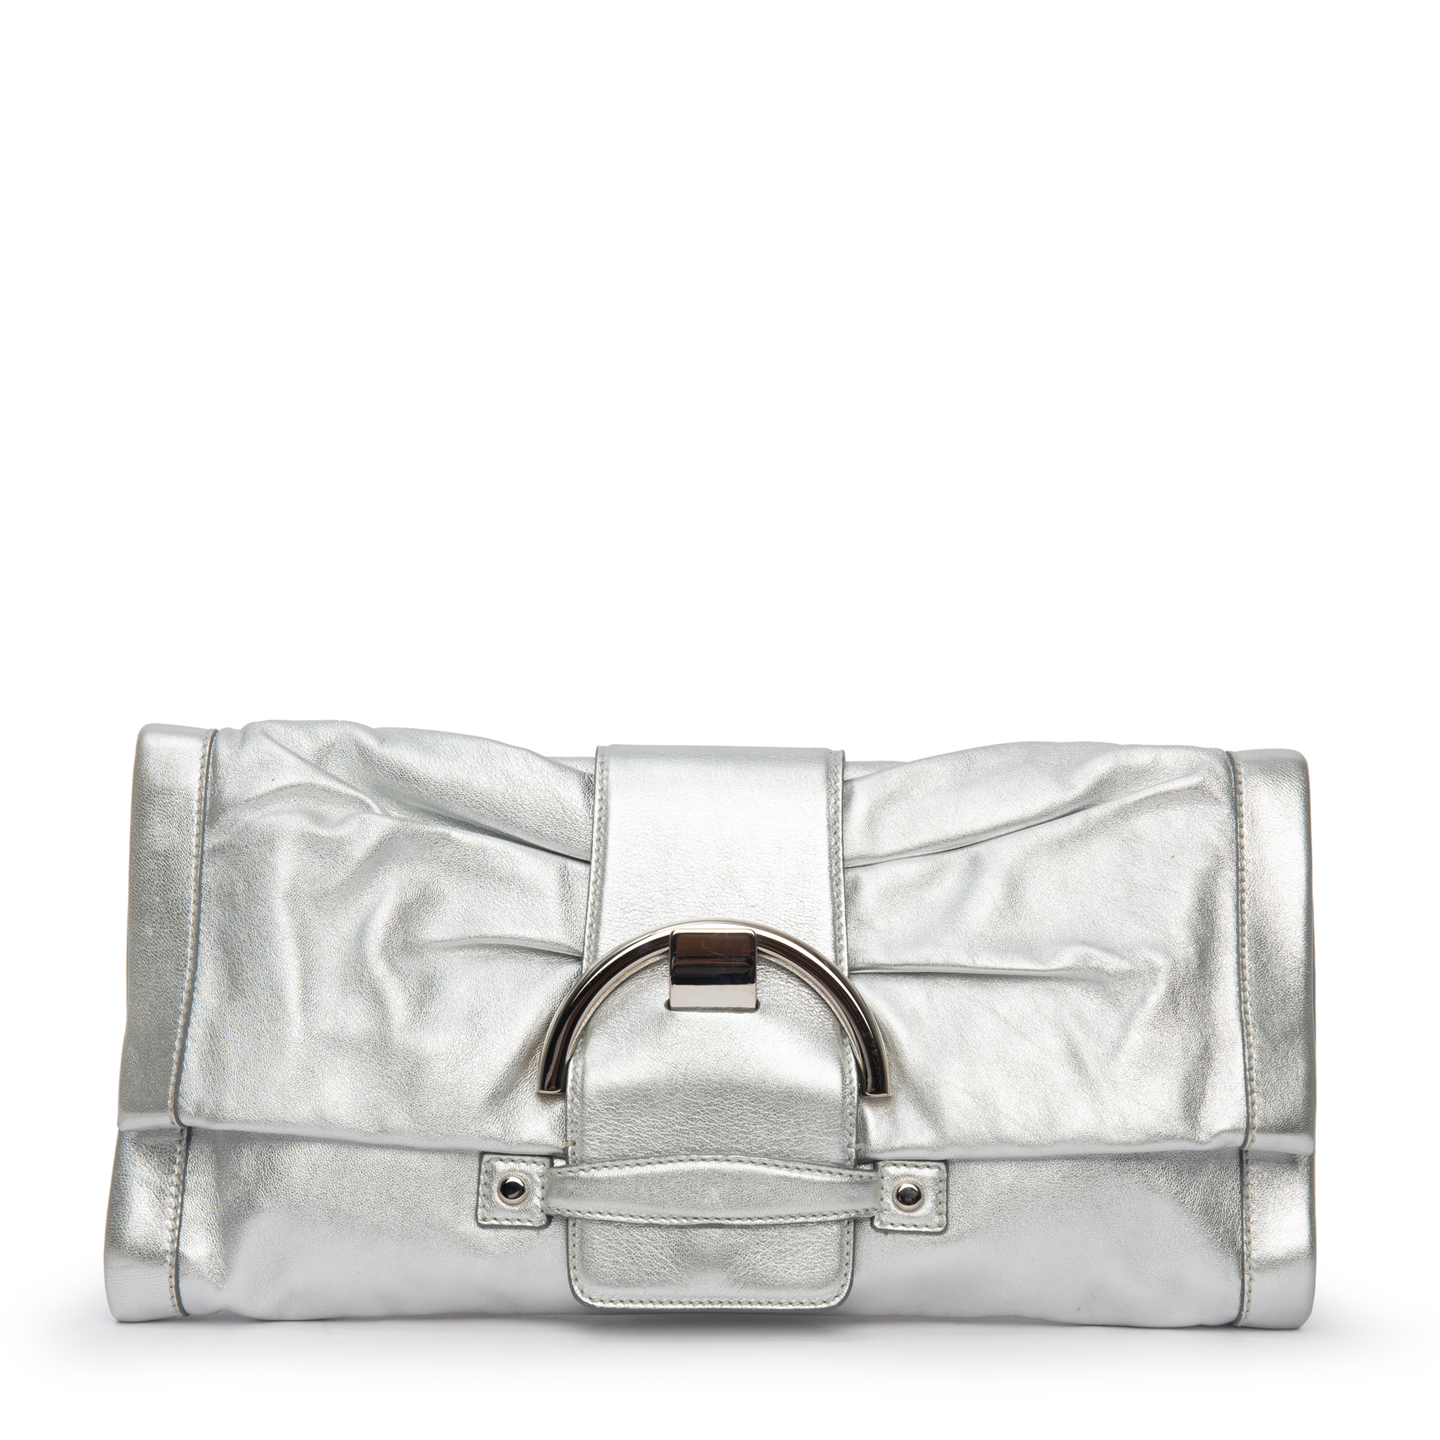 Sergio Rossi Metallic Silver Leather Envelope Clutch 03